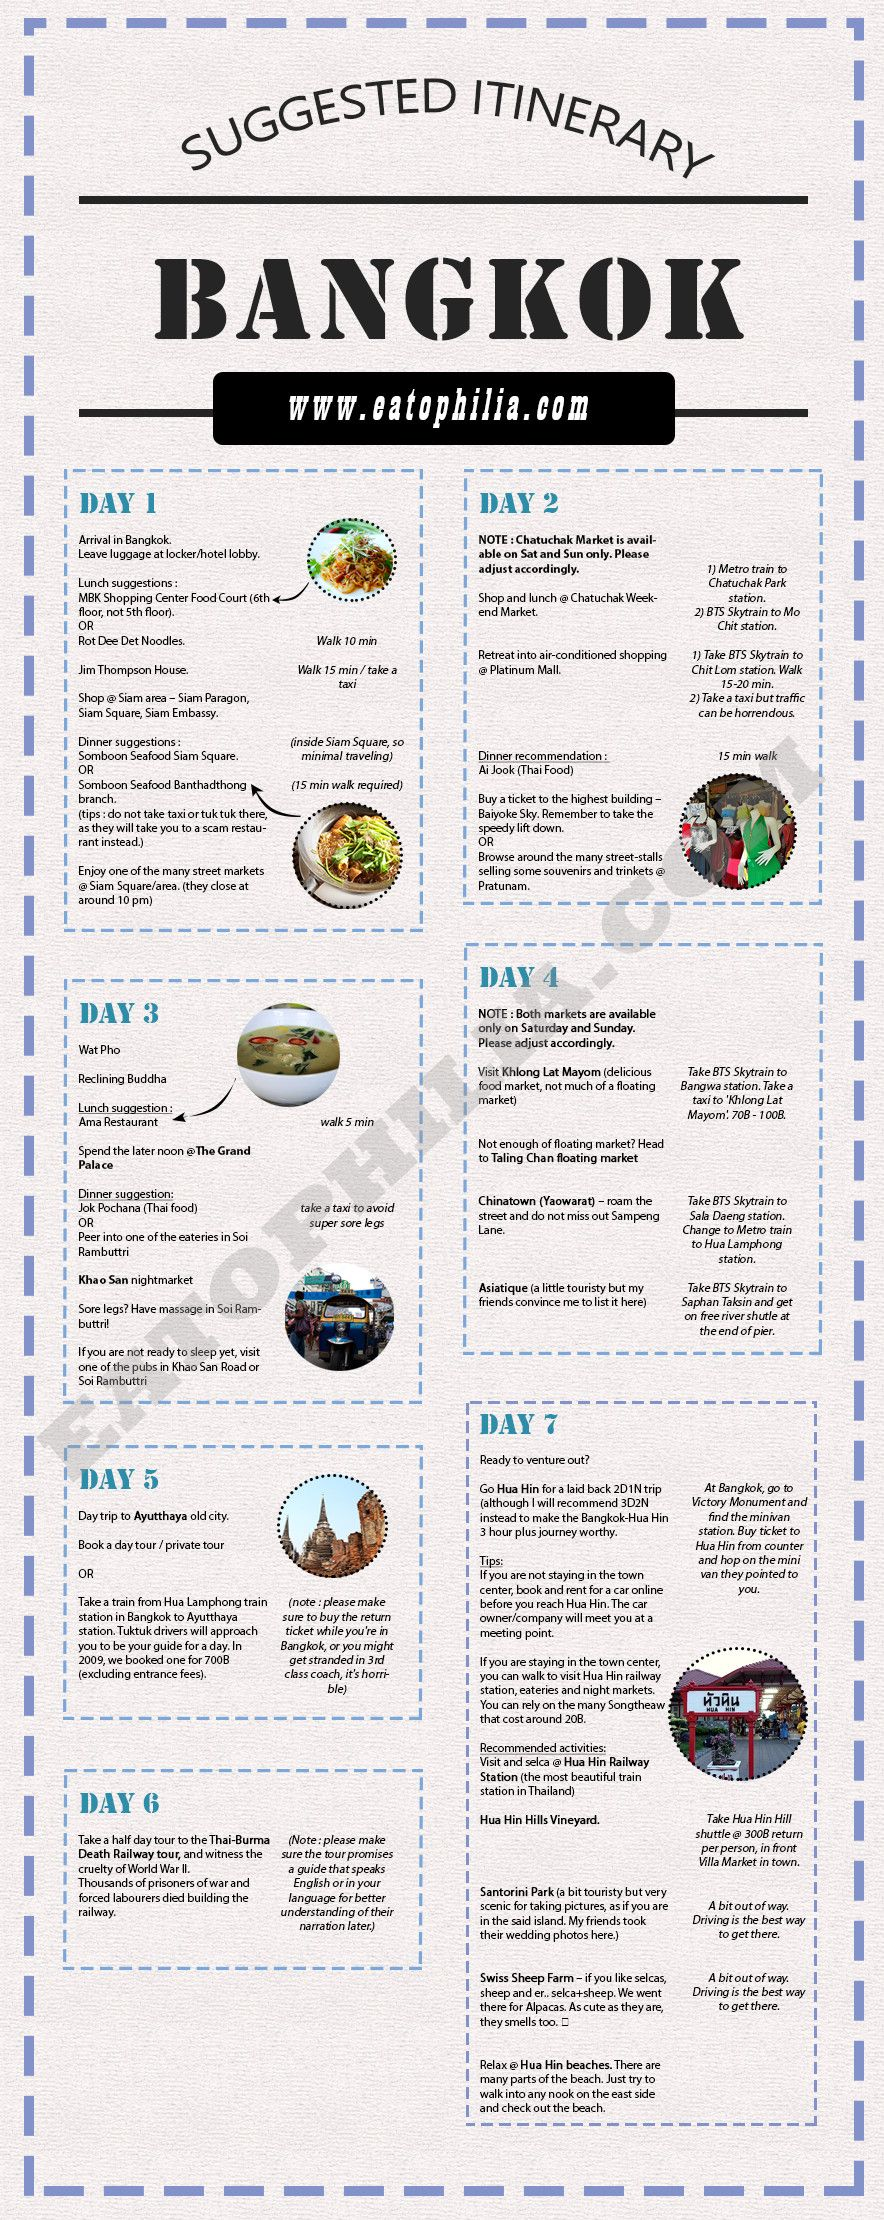 Bangkok Travel 3days 7days Itinerary A Suggested Itinerary For Bangkok 3 7 Days You Can Adjust This Printable Itinerary Accordingly Have Fun